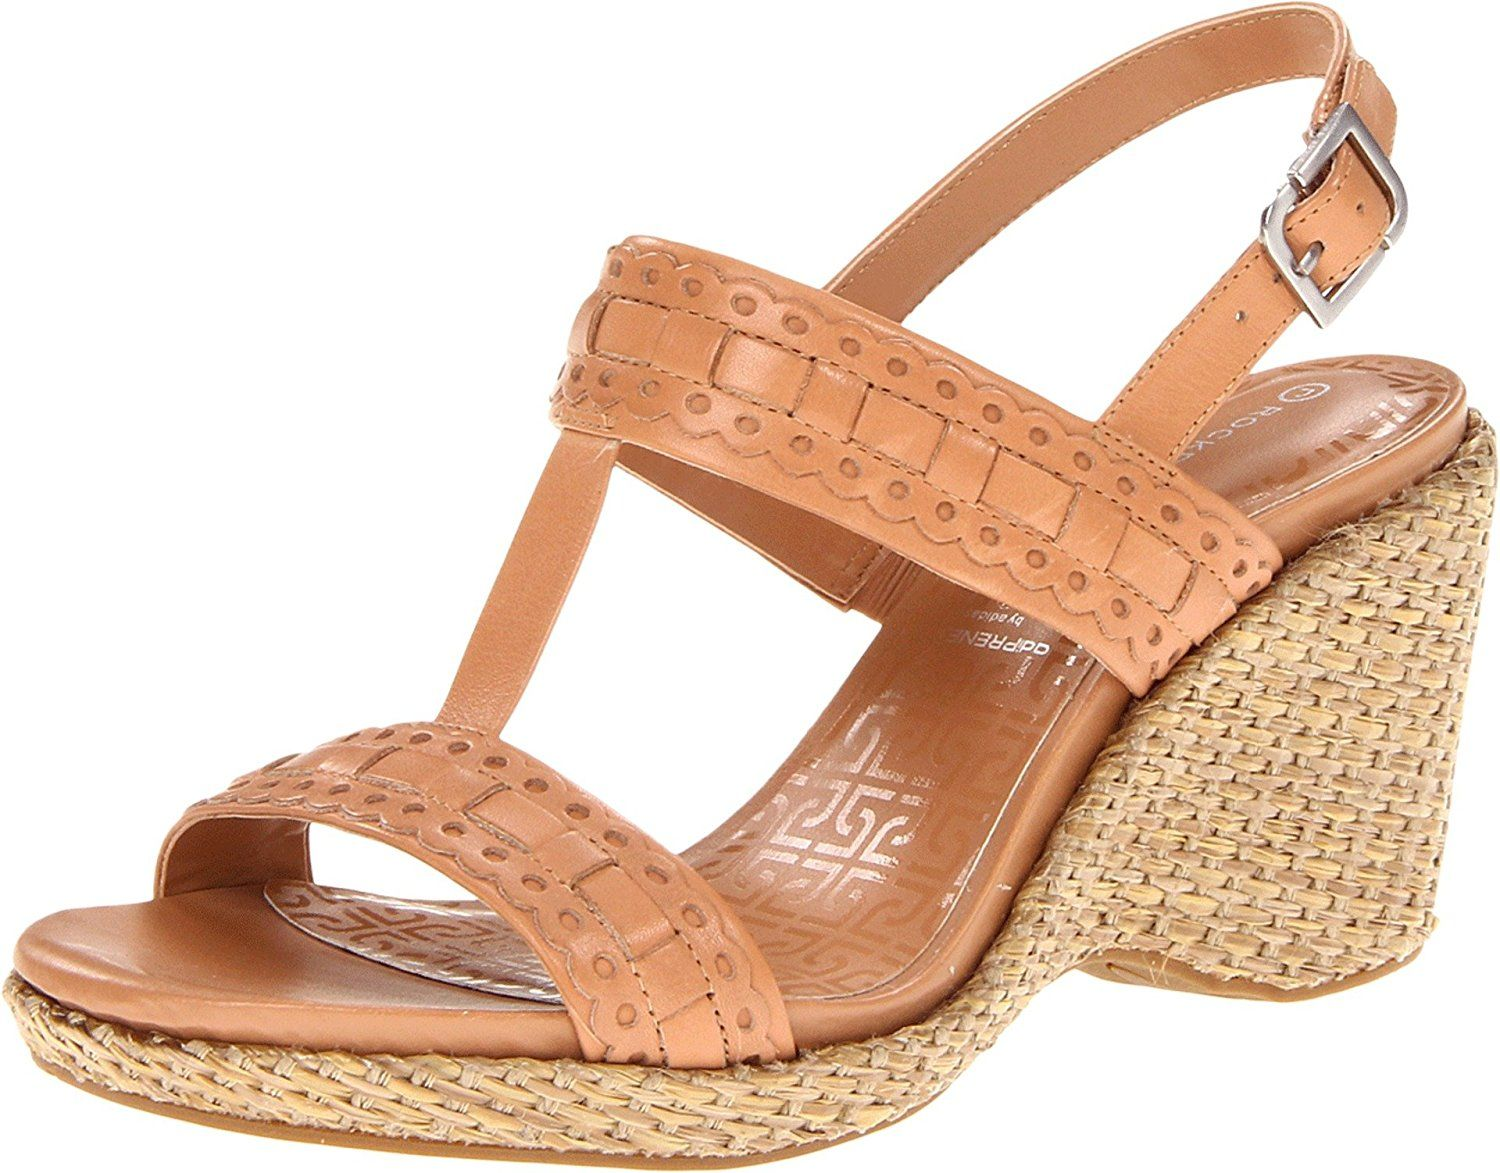 ed72dfef37 Rockport Women's Delyssa H Strap Wedge Sandal ** Special product just for  you. See it now! : Platform sandals